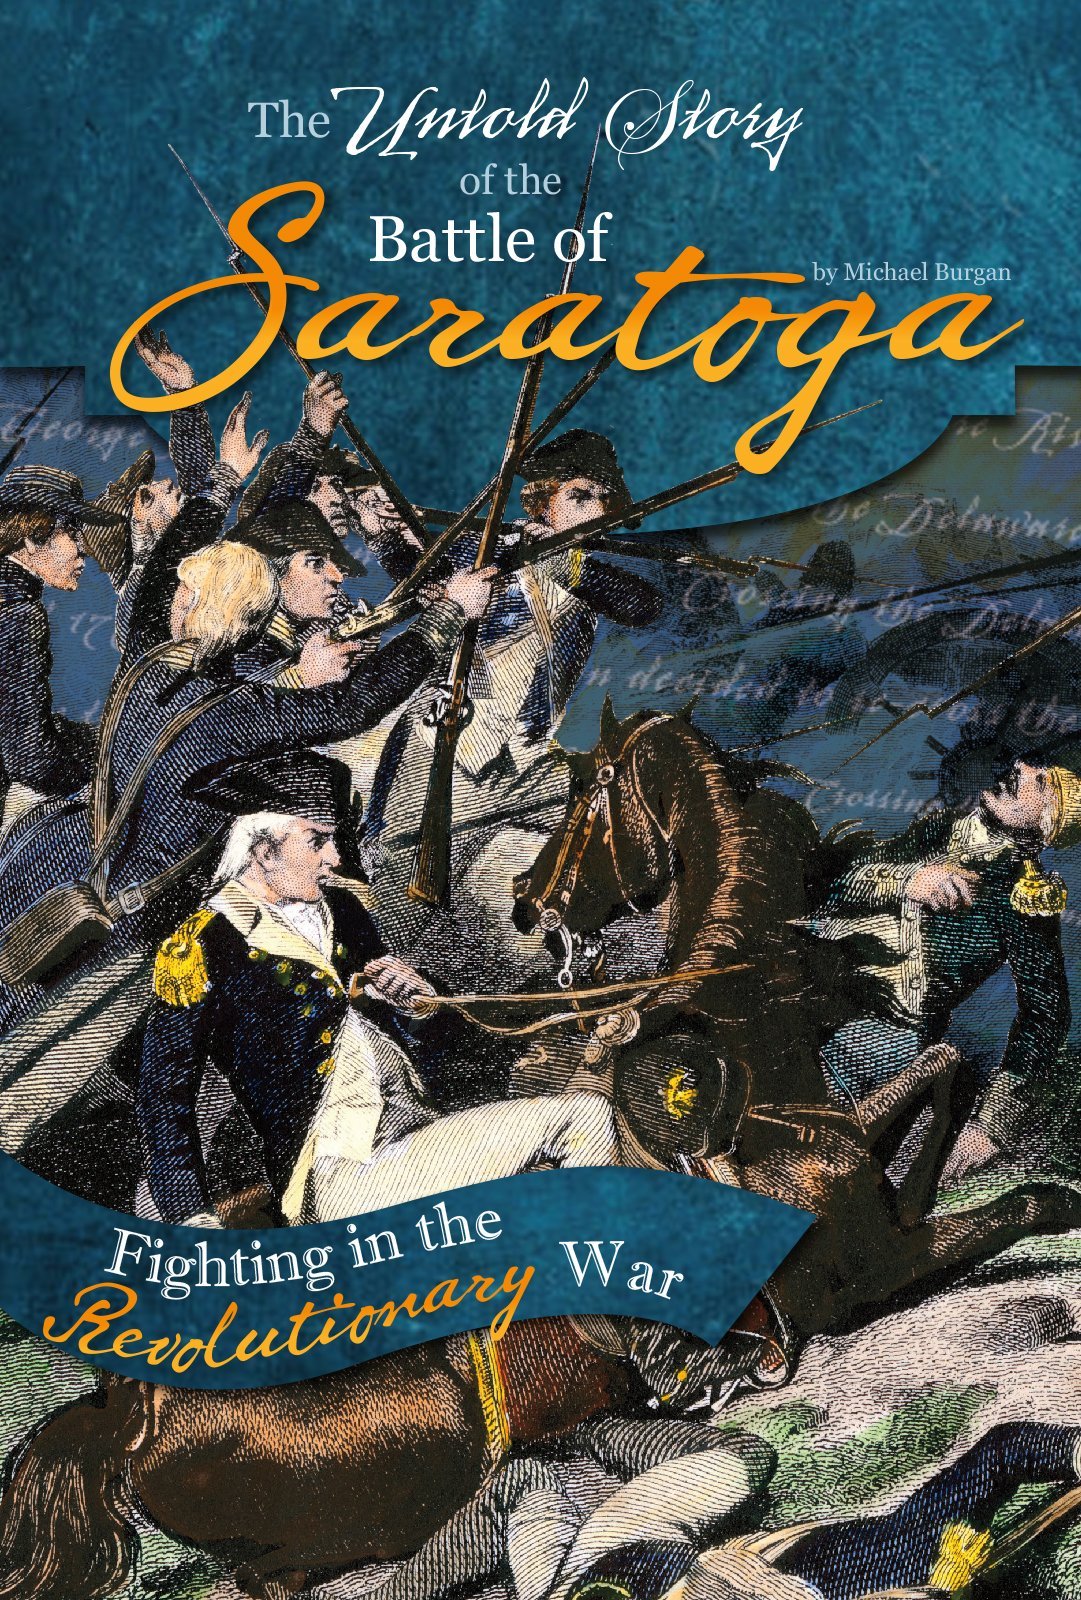 the untold story of the battle of saratoga a turning point in the revolutionary war what you didnt know about the american revolution michael burgan